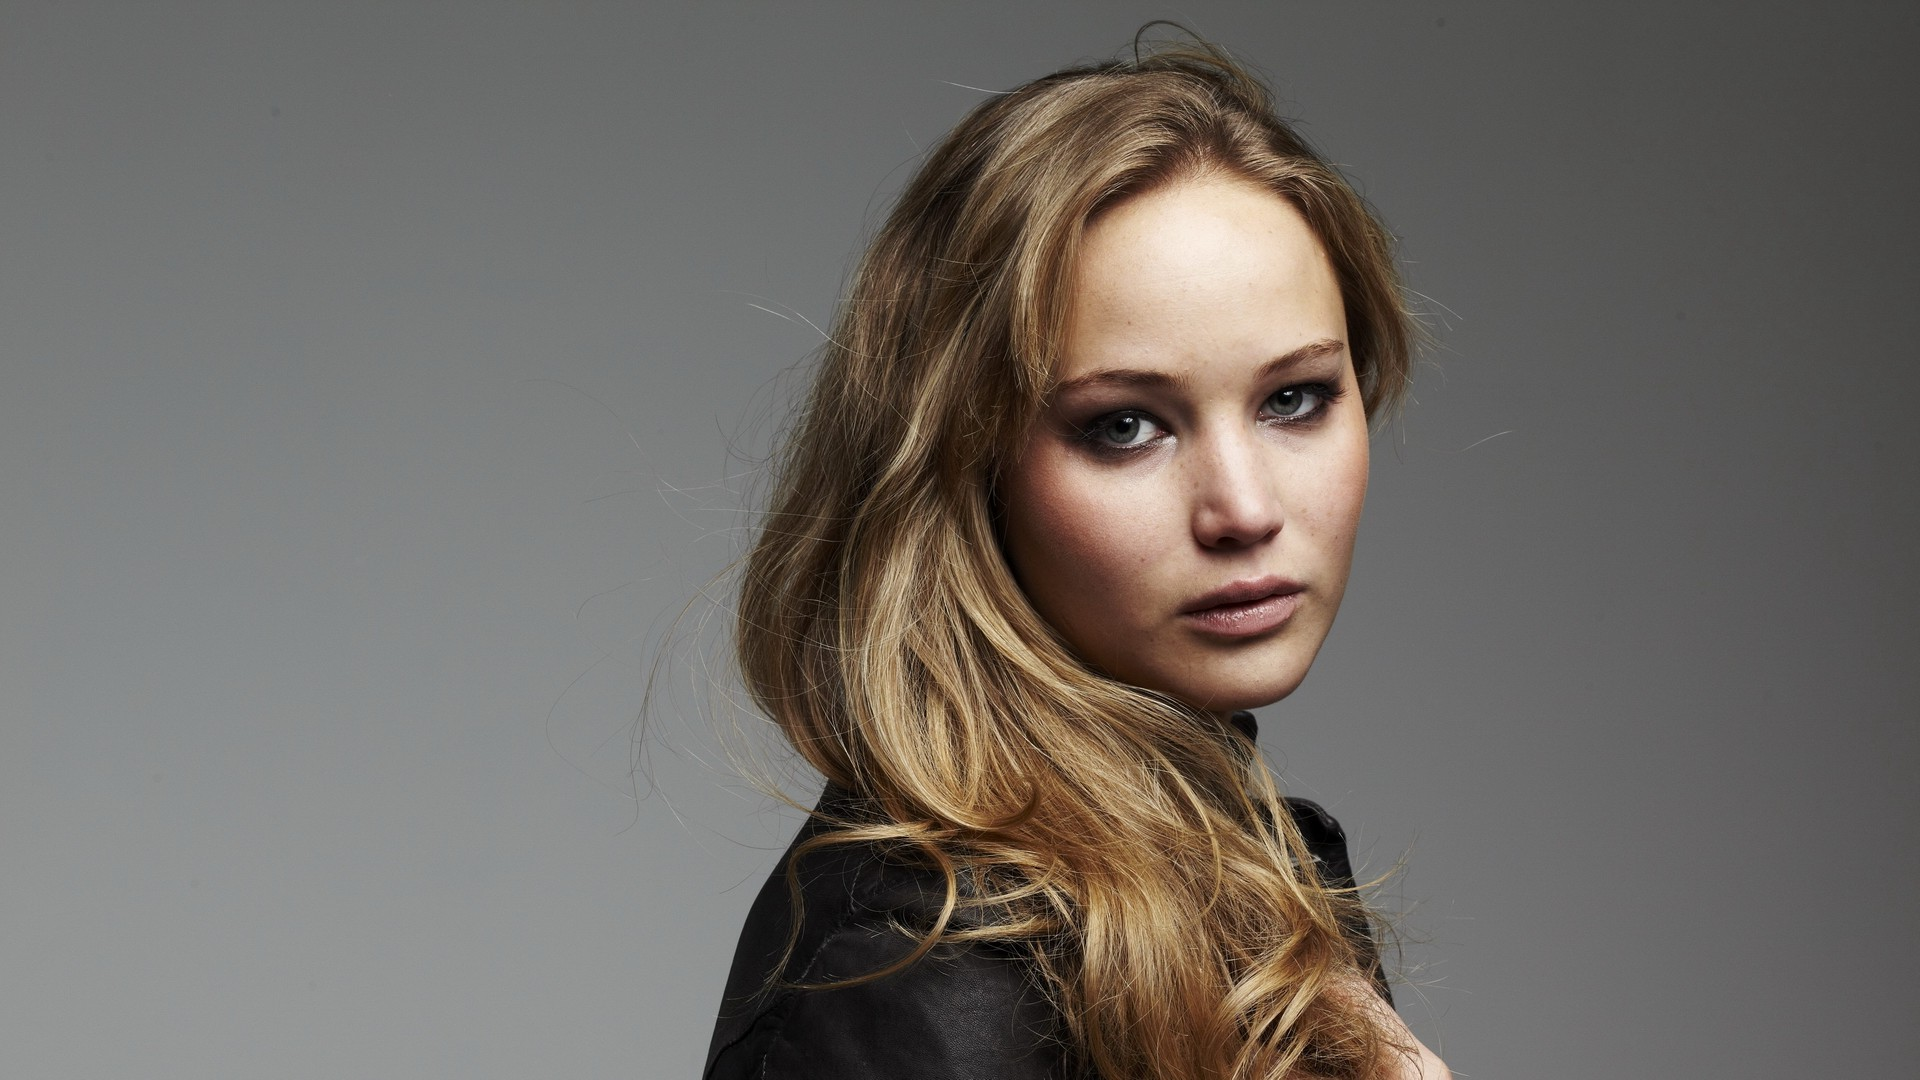 Jennifer Lawrence Full HD Wallpapers   Wallpaper High Definition 1920x1080